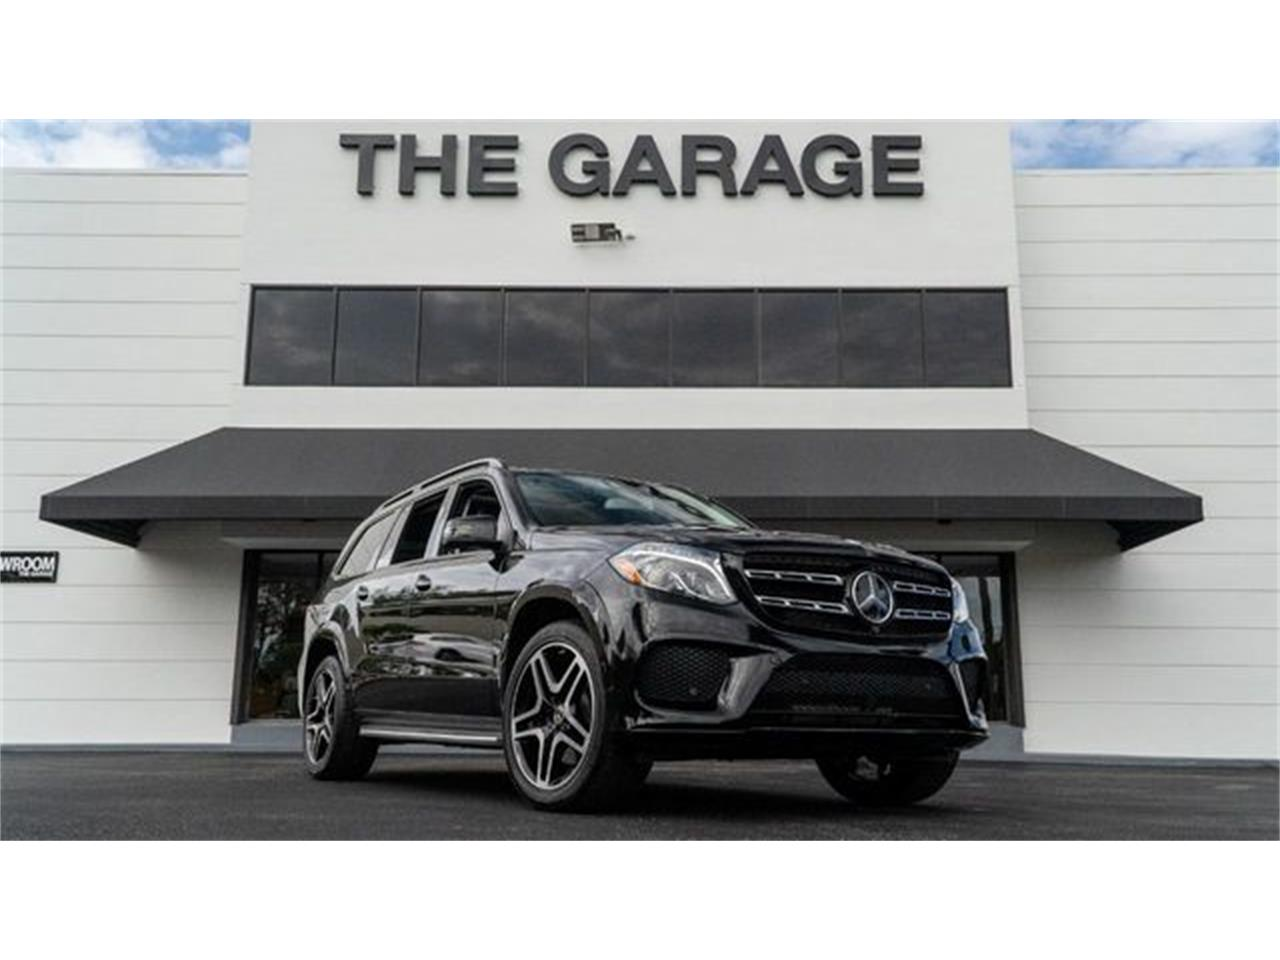 for sale 2018 mercedes-benz gls-class in miami, florida cars - miami, fl at geebo